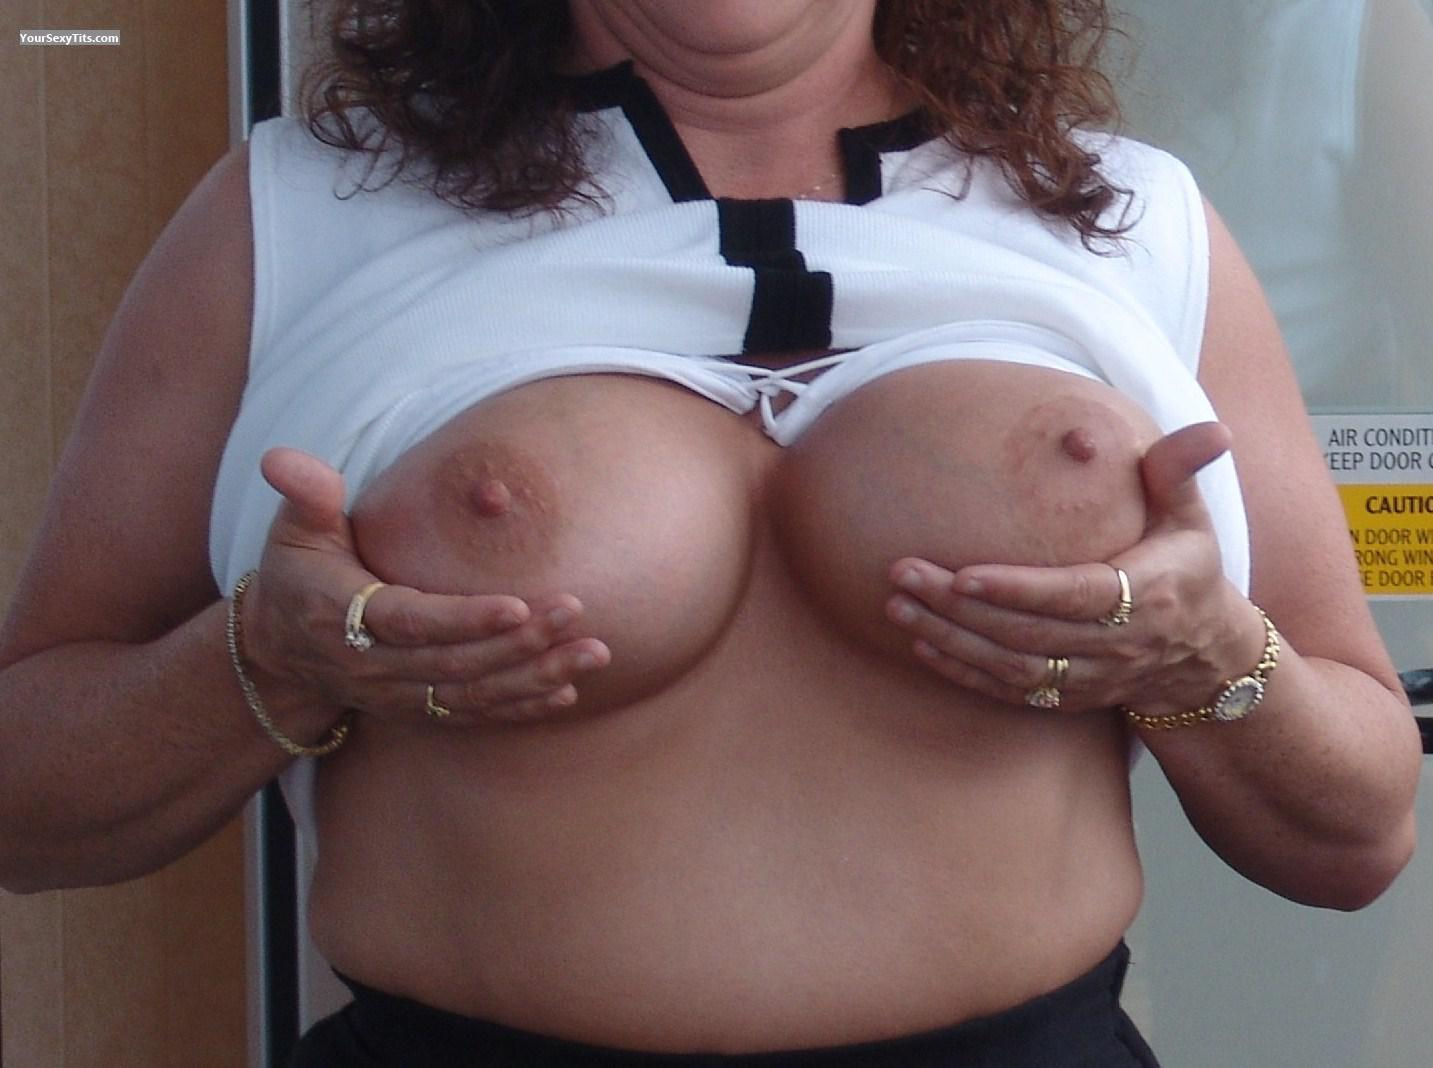 Tit Flash: Big Tits - Trouble from United States